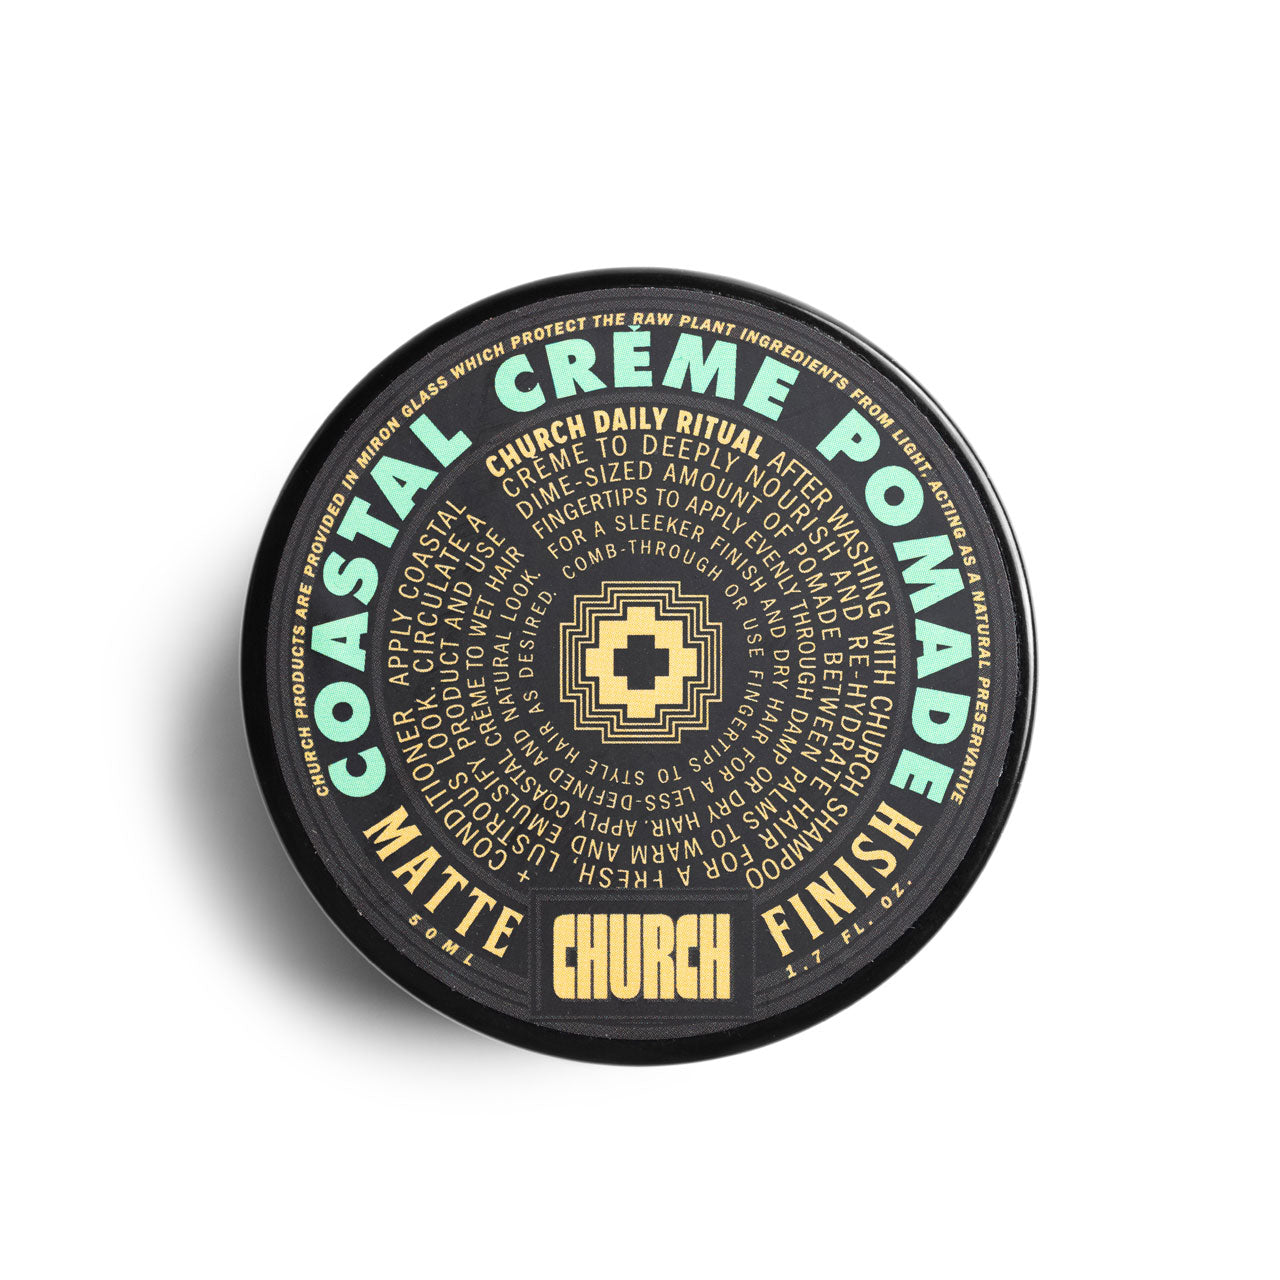 Church California Coastal Creme Pomade